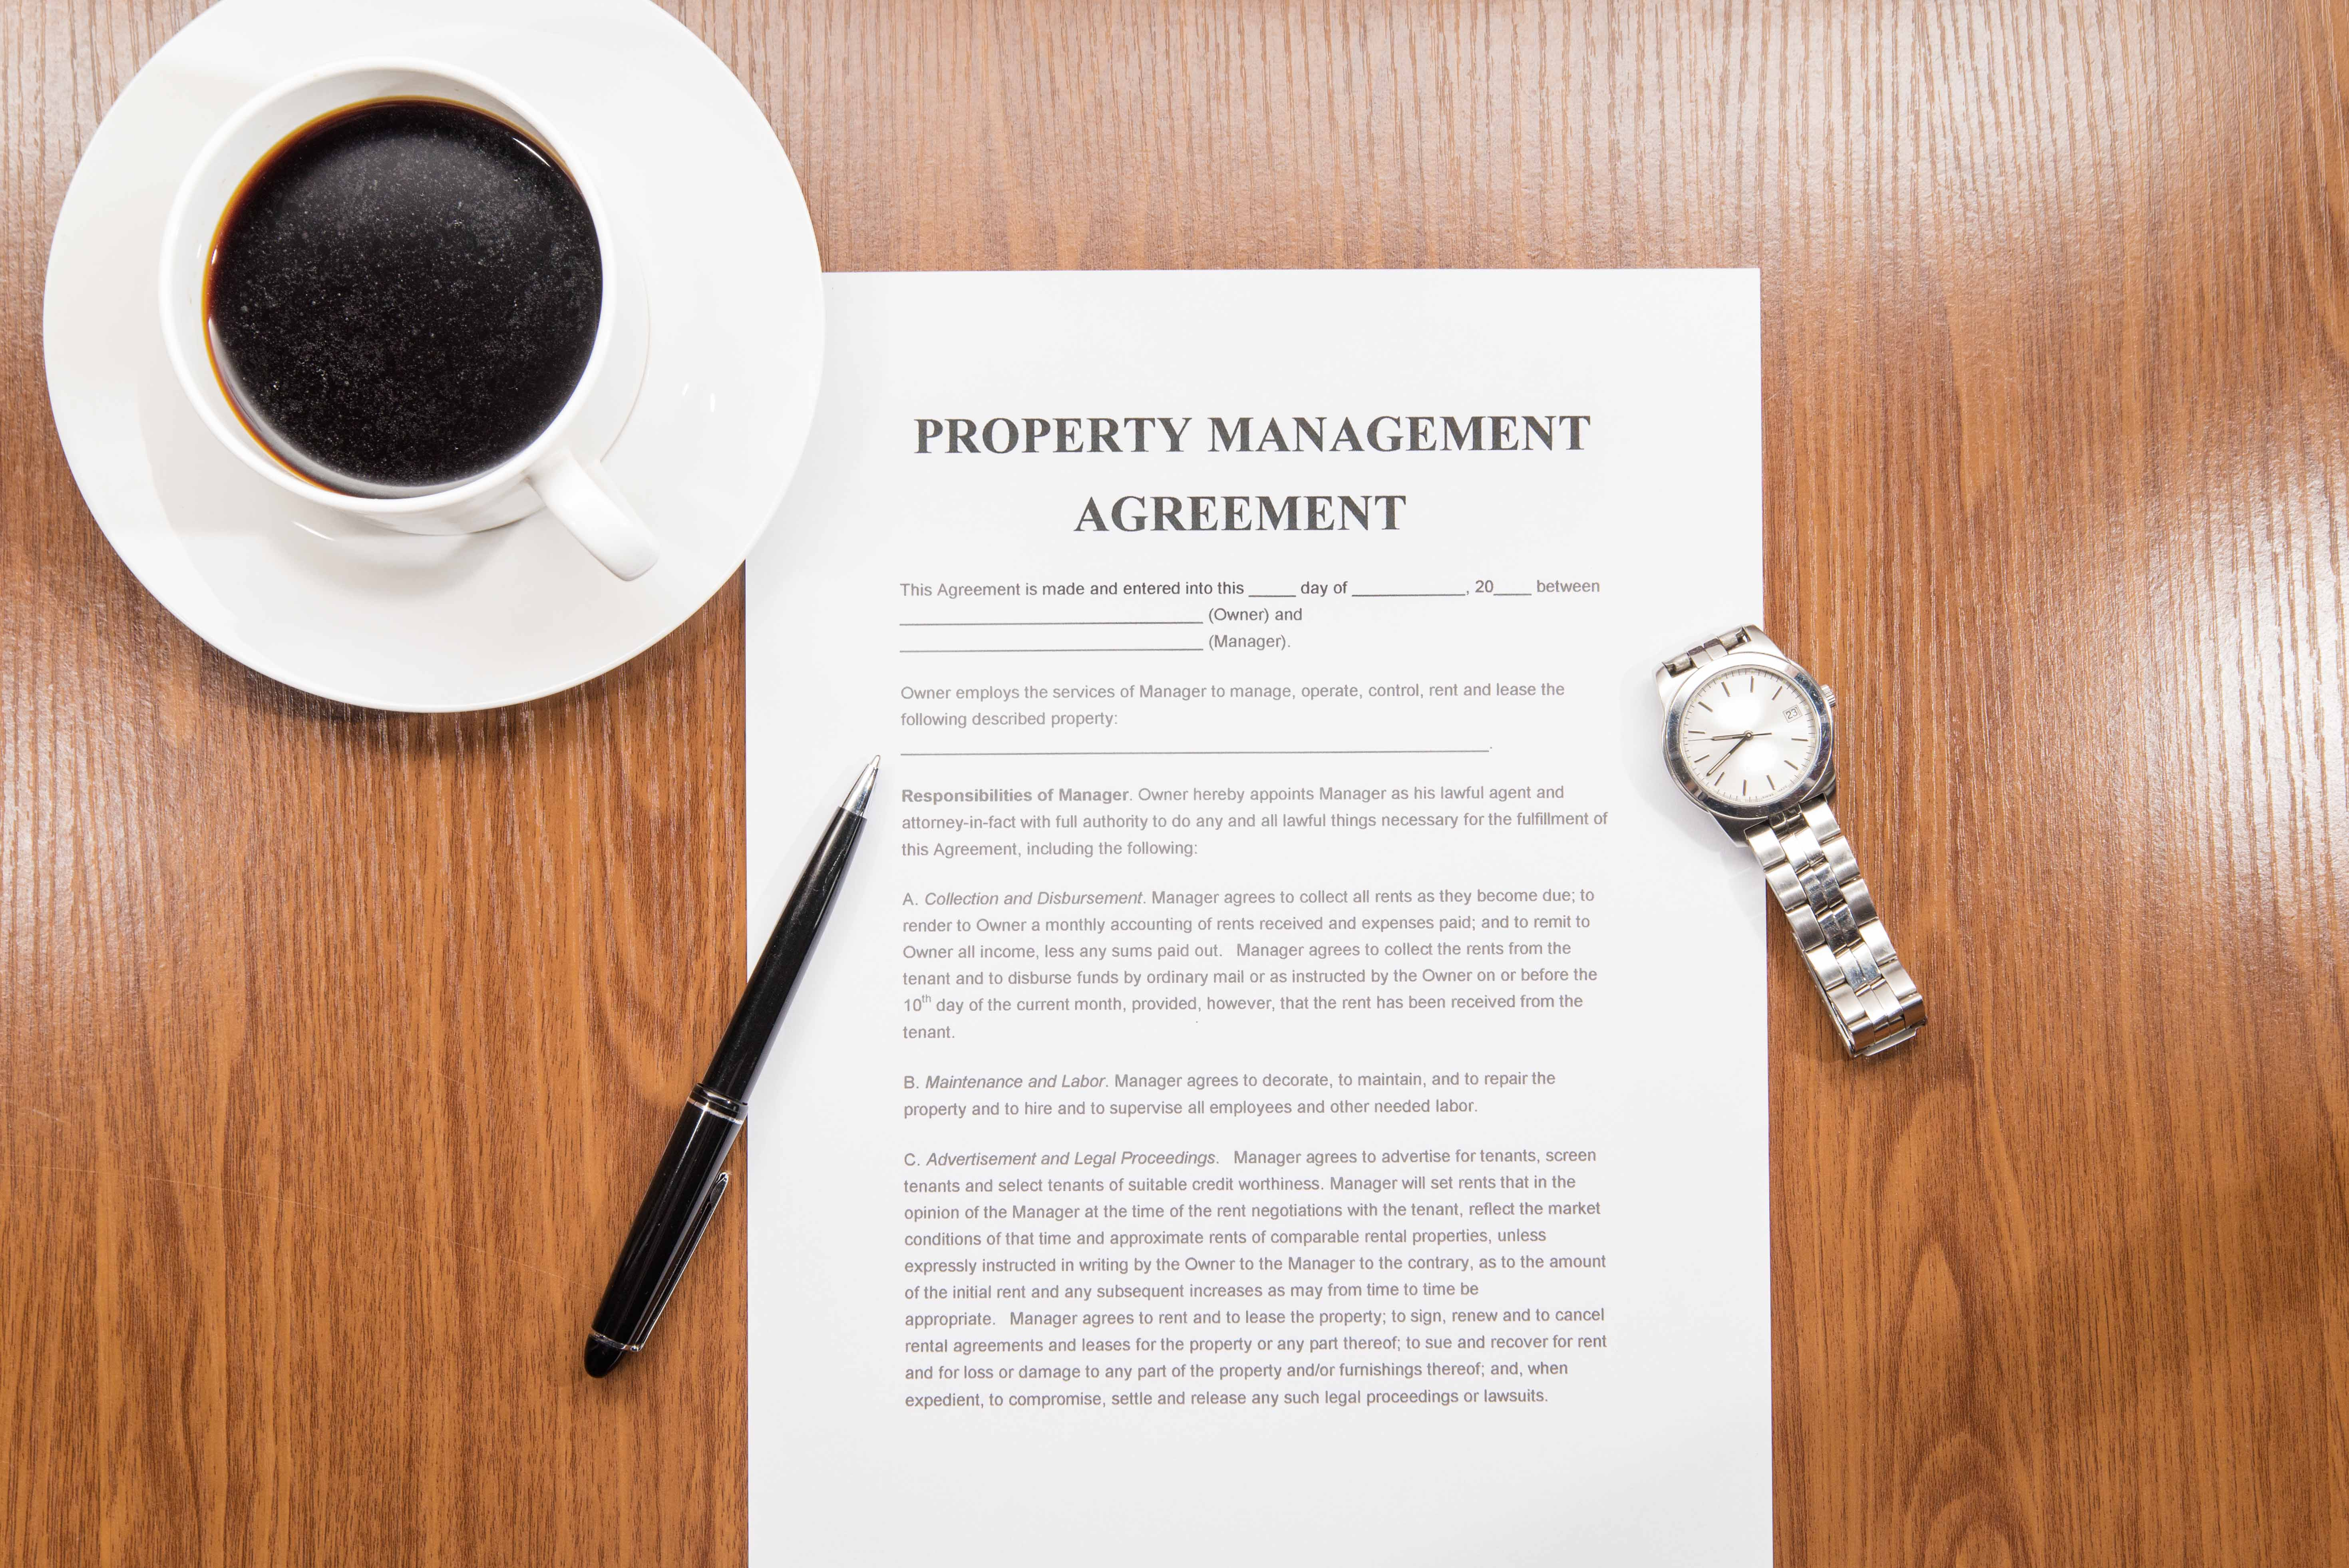 Self-managing your investment property vs employing a property manager - Gold Coast - Brisbane